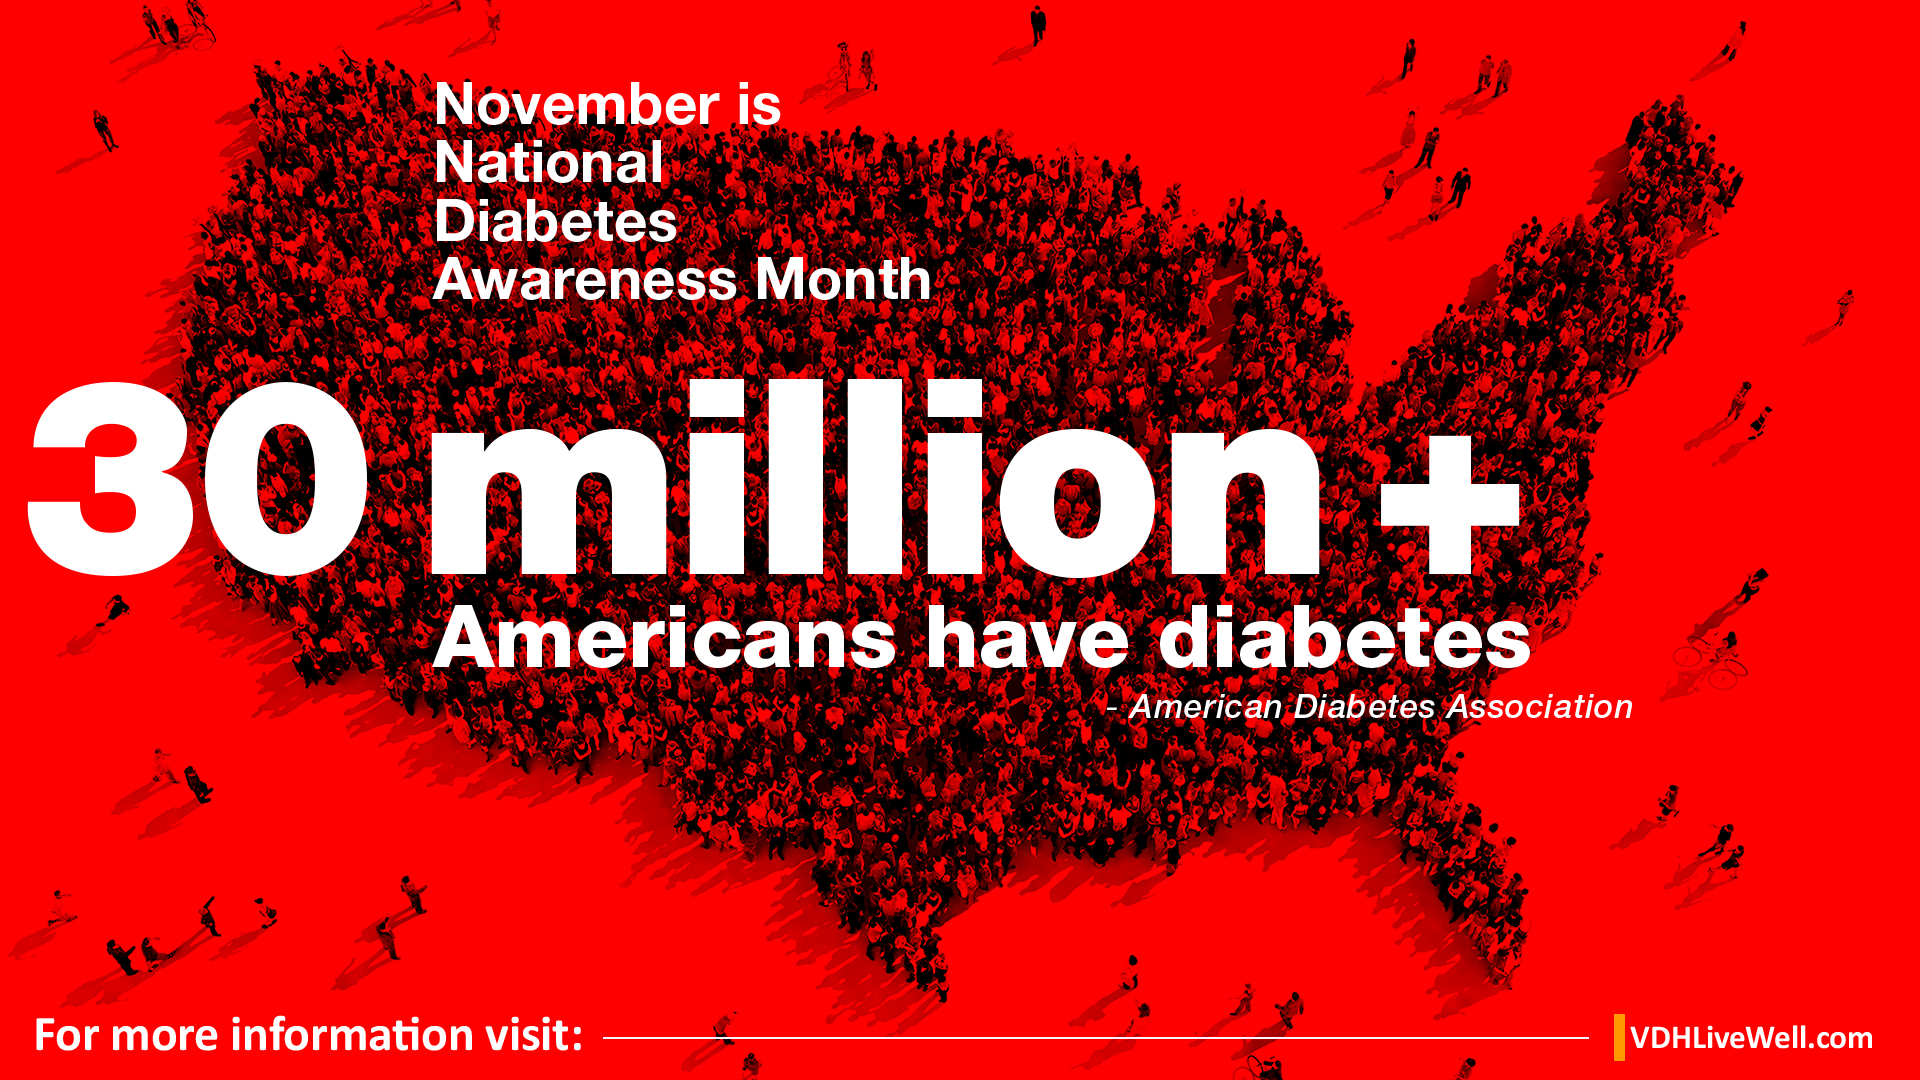 Photo: Group of people assembled in shape of United States with red overlay. Text: November is National Diabetes Awareness Month. 30 million + American have diabetes- American Diabetes Association